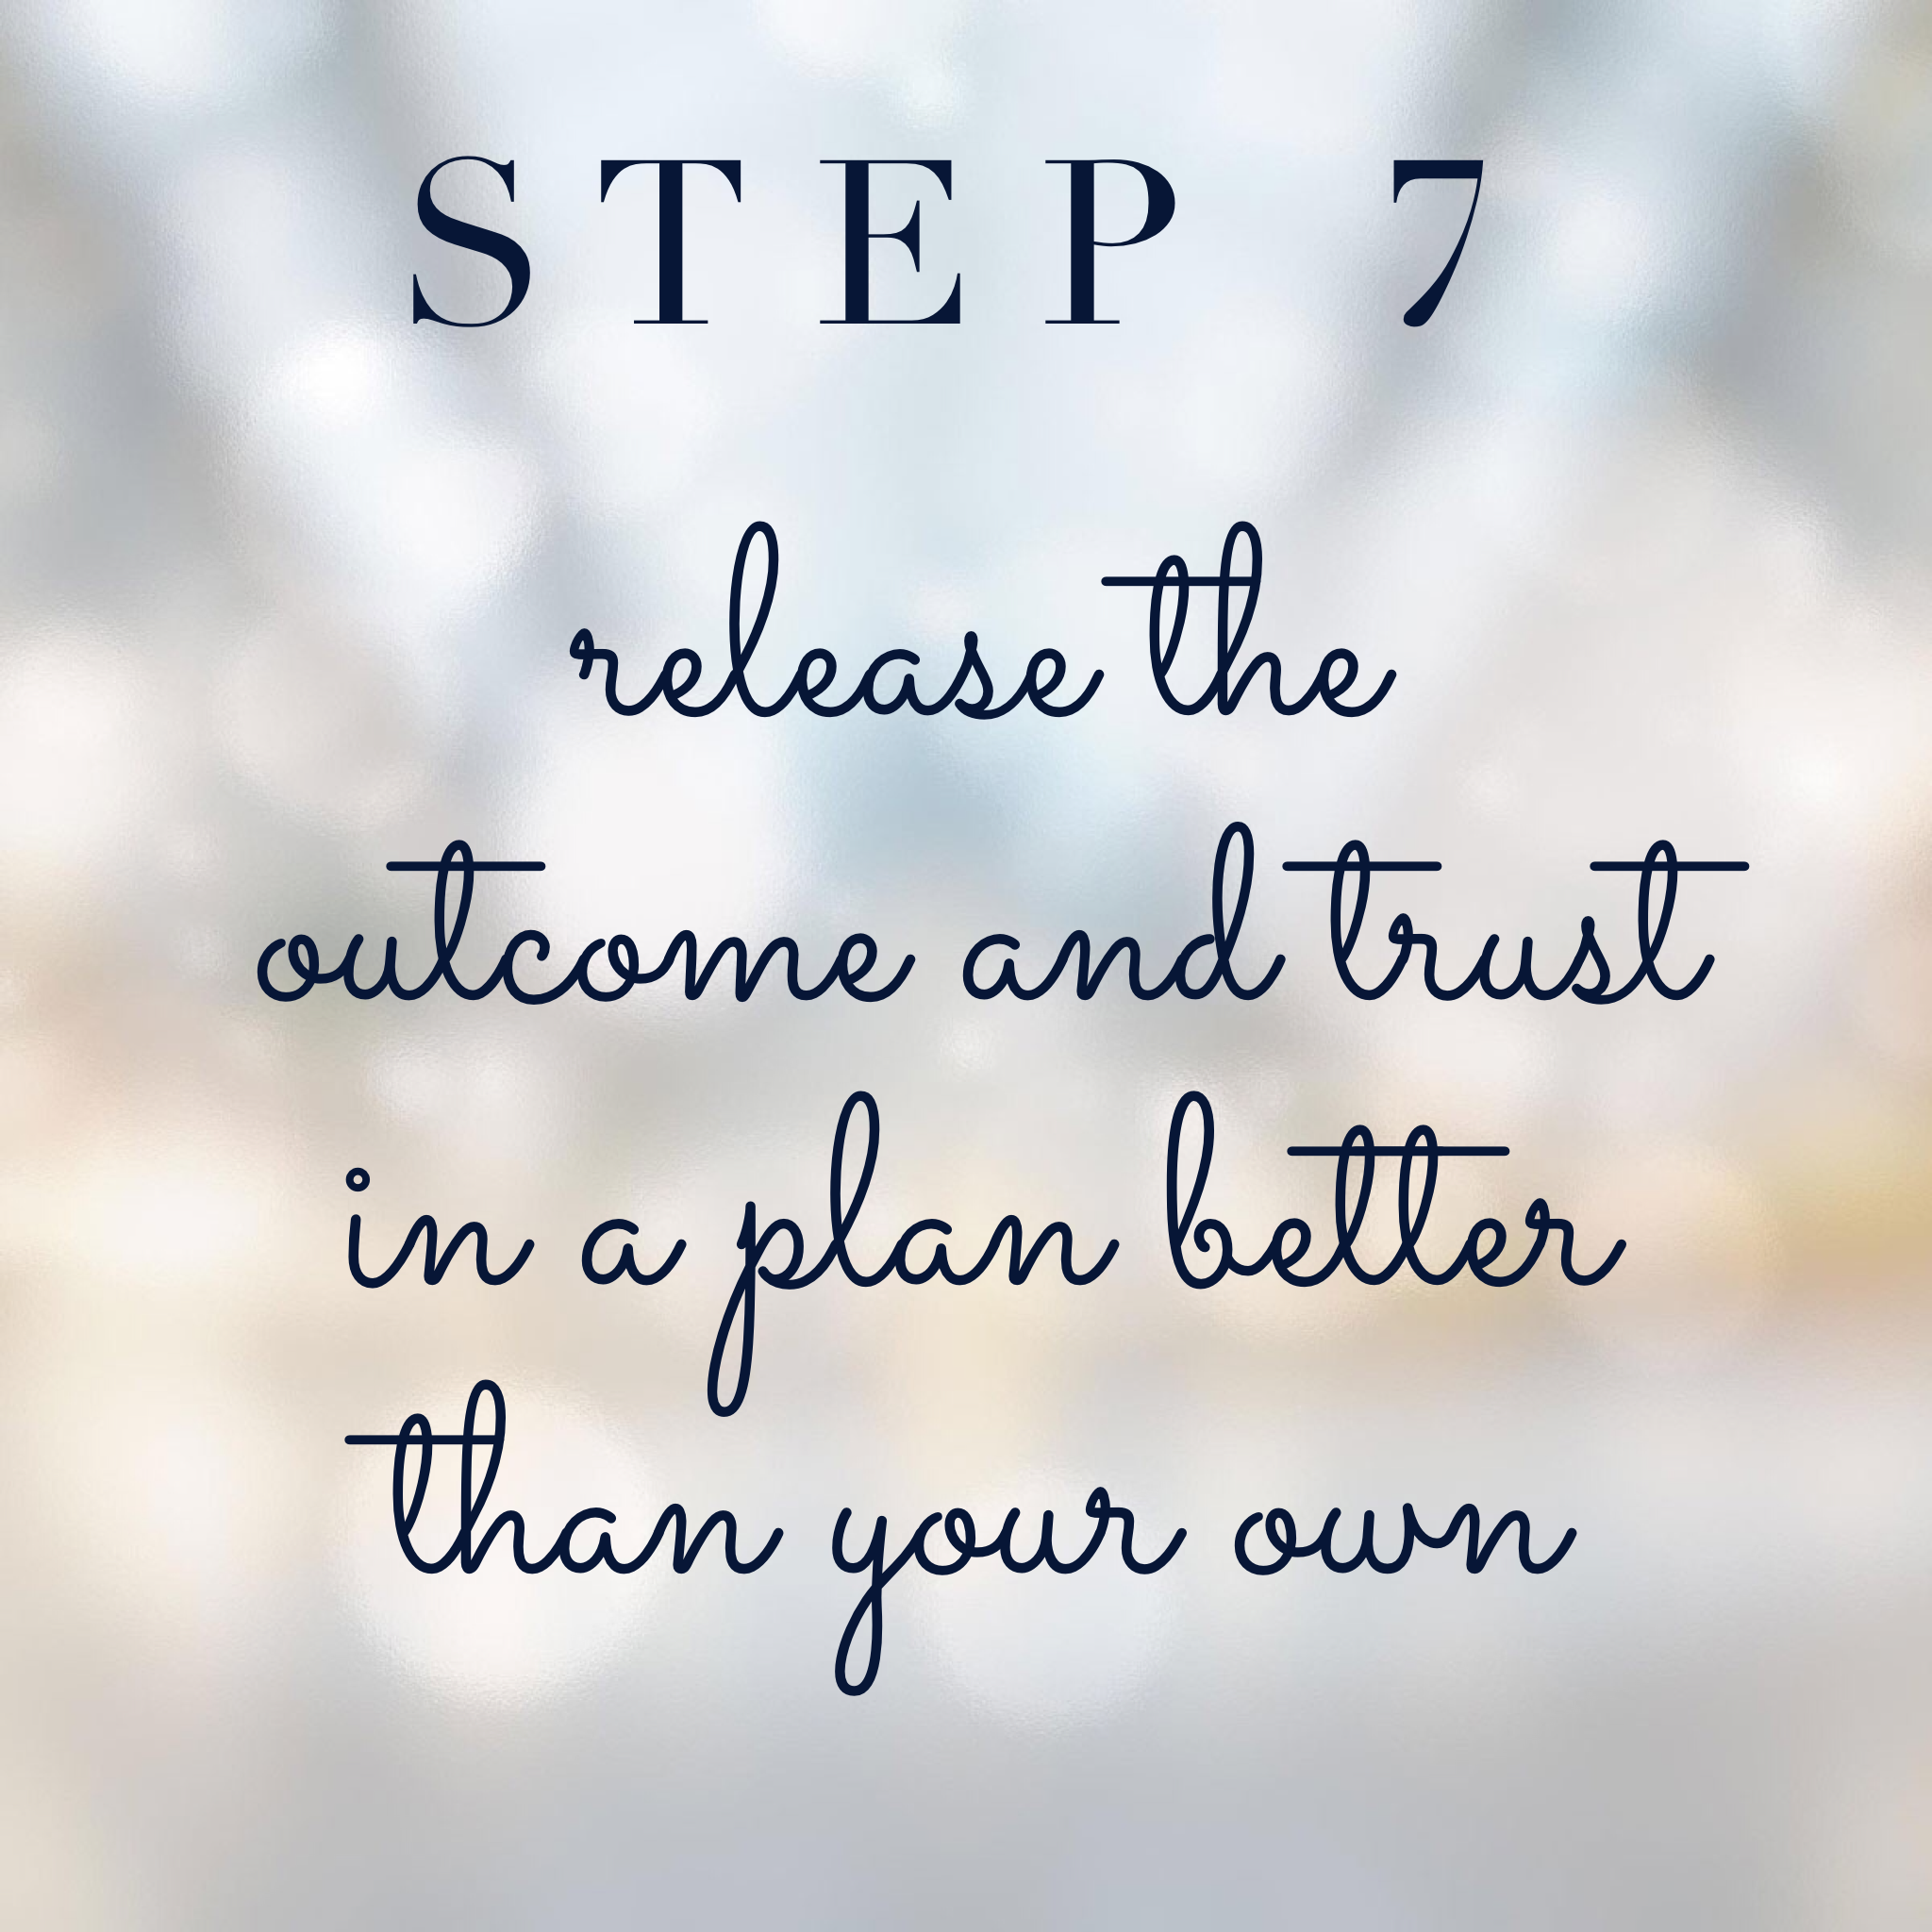 Connect with your spirit guides step 7: Release the outcome and trust in a plan better than your own